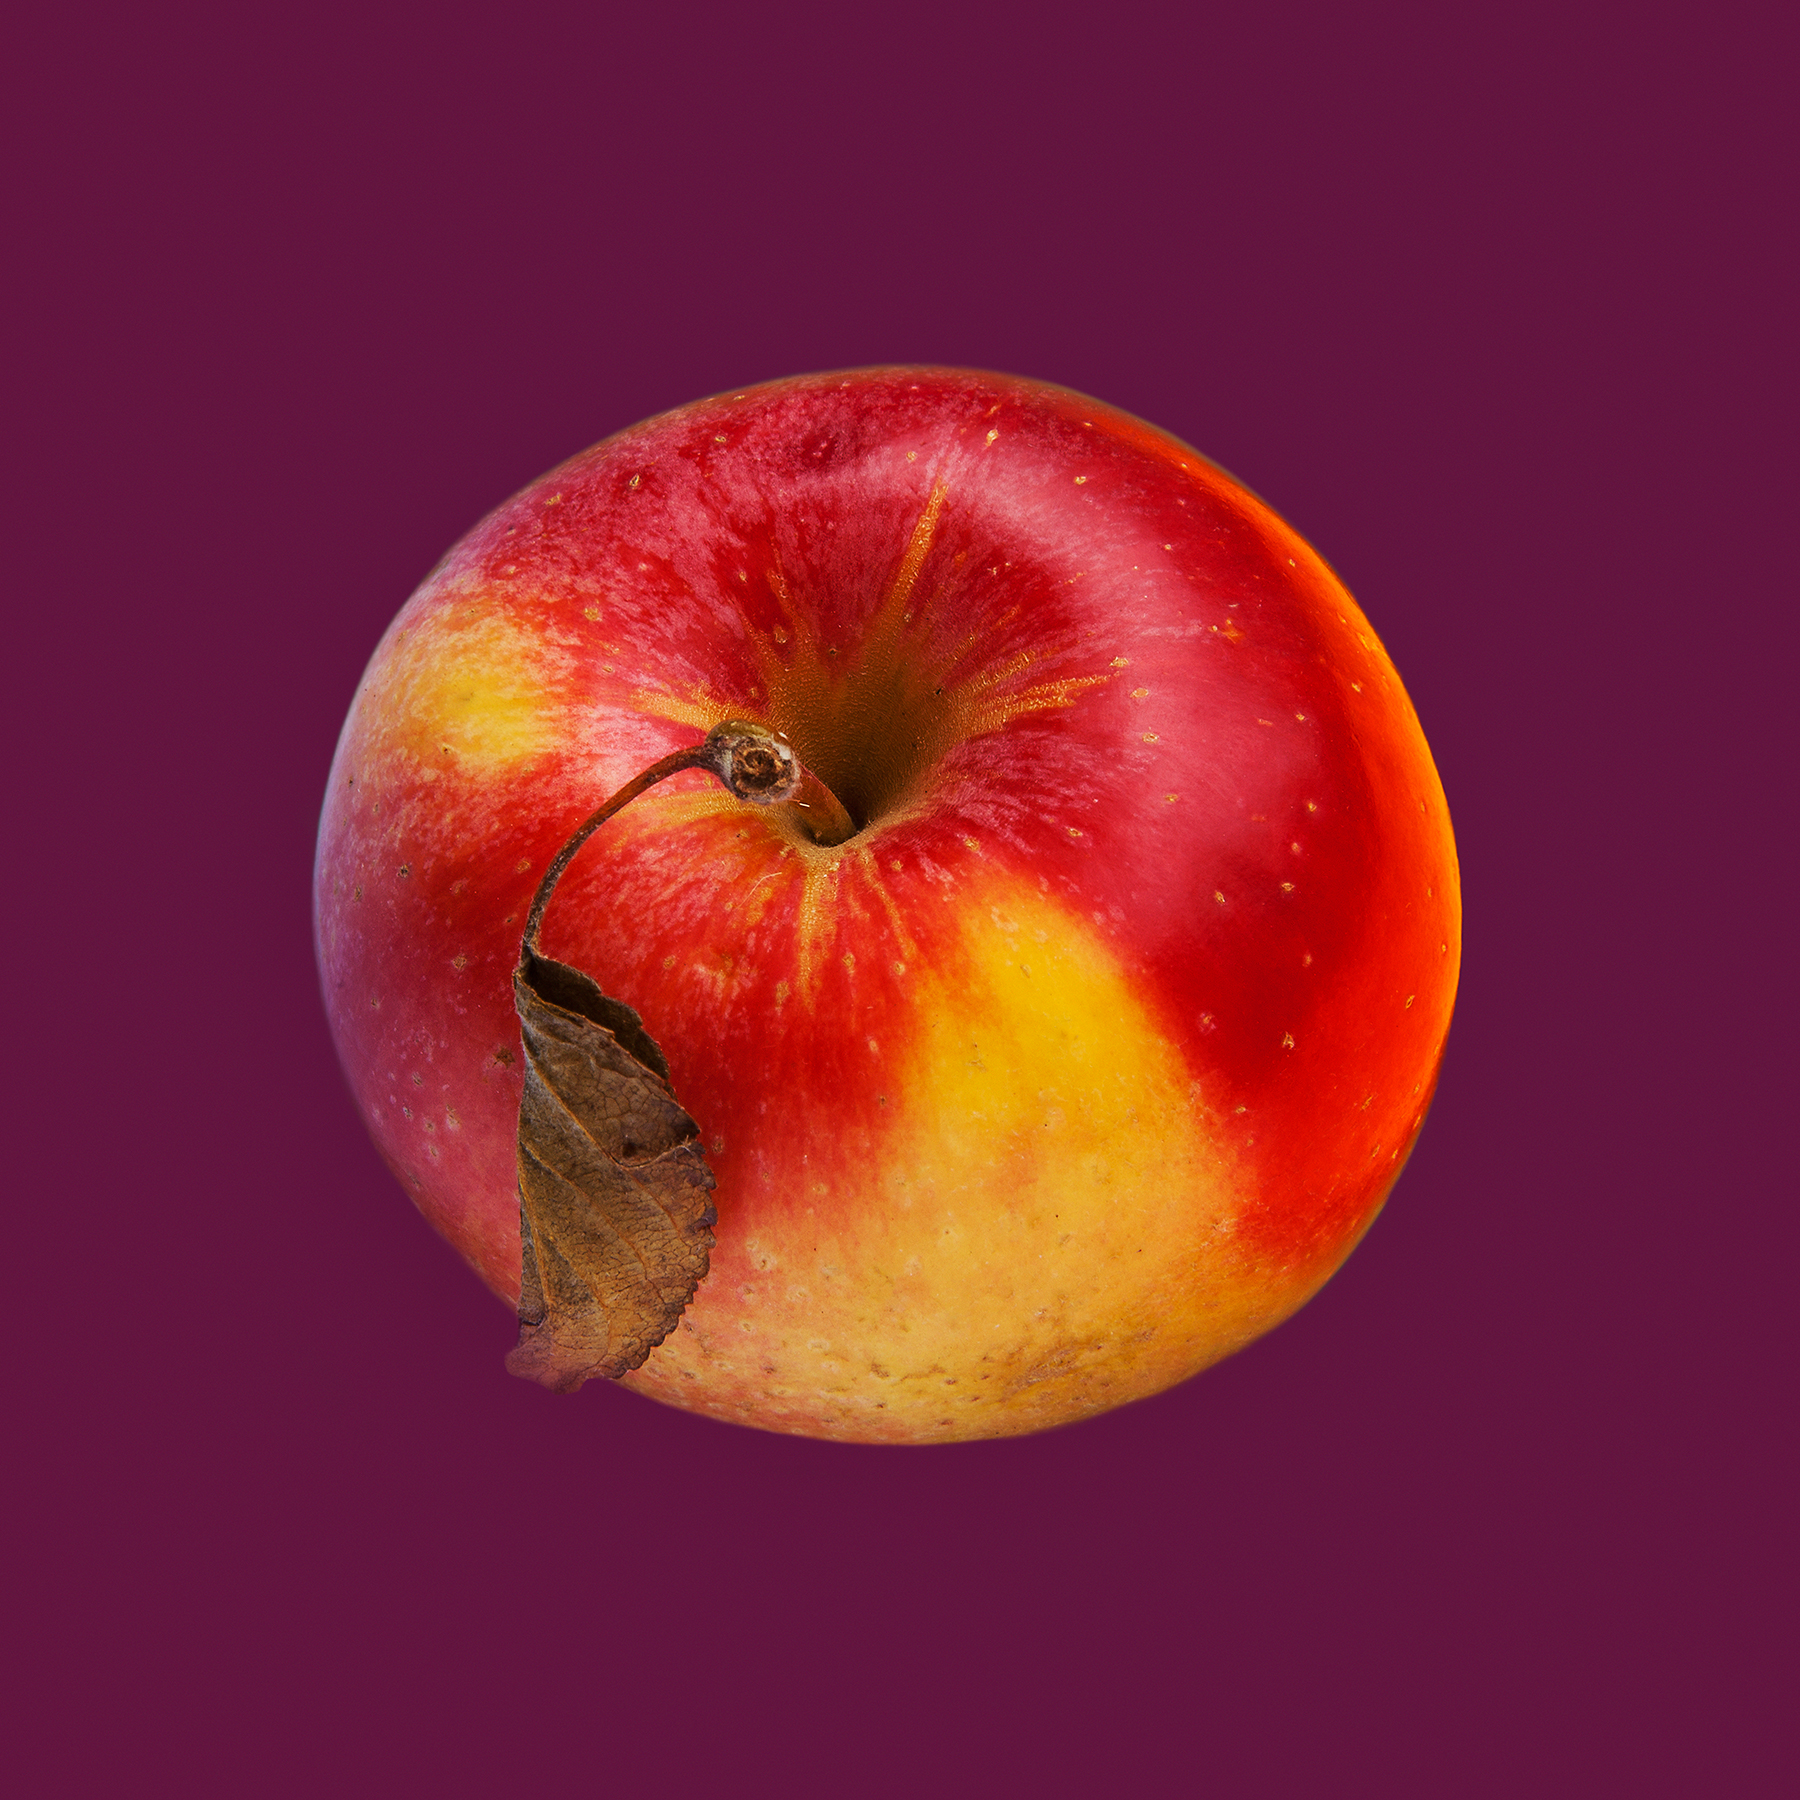 APPLE-ORGANIC-FRUIT-©-JONATHAN-R.-BECKERMAN-PHOTOGRAPHY.jpg